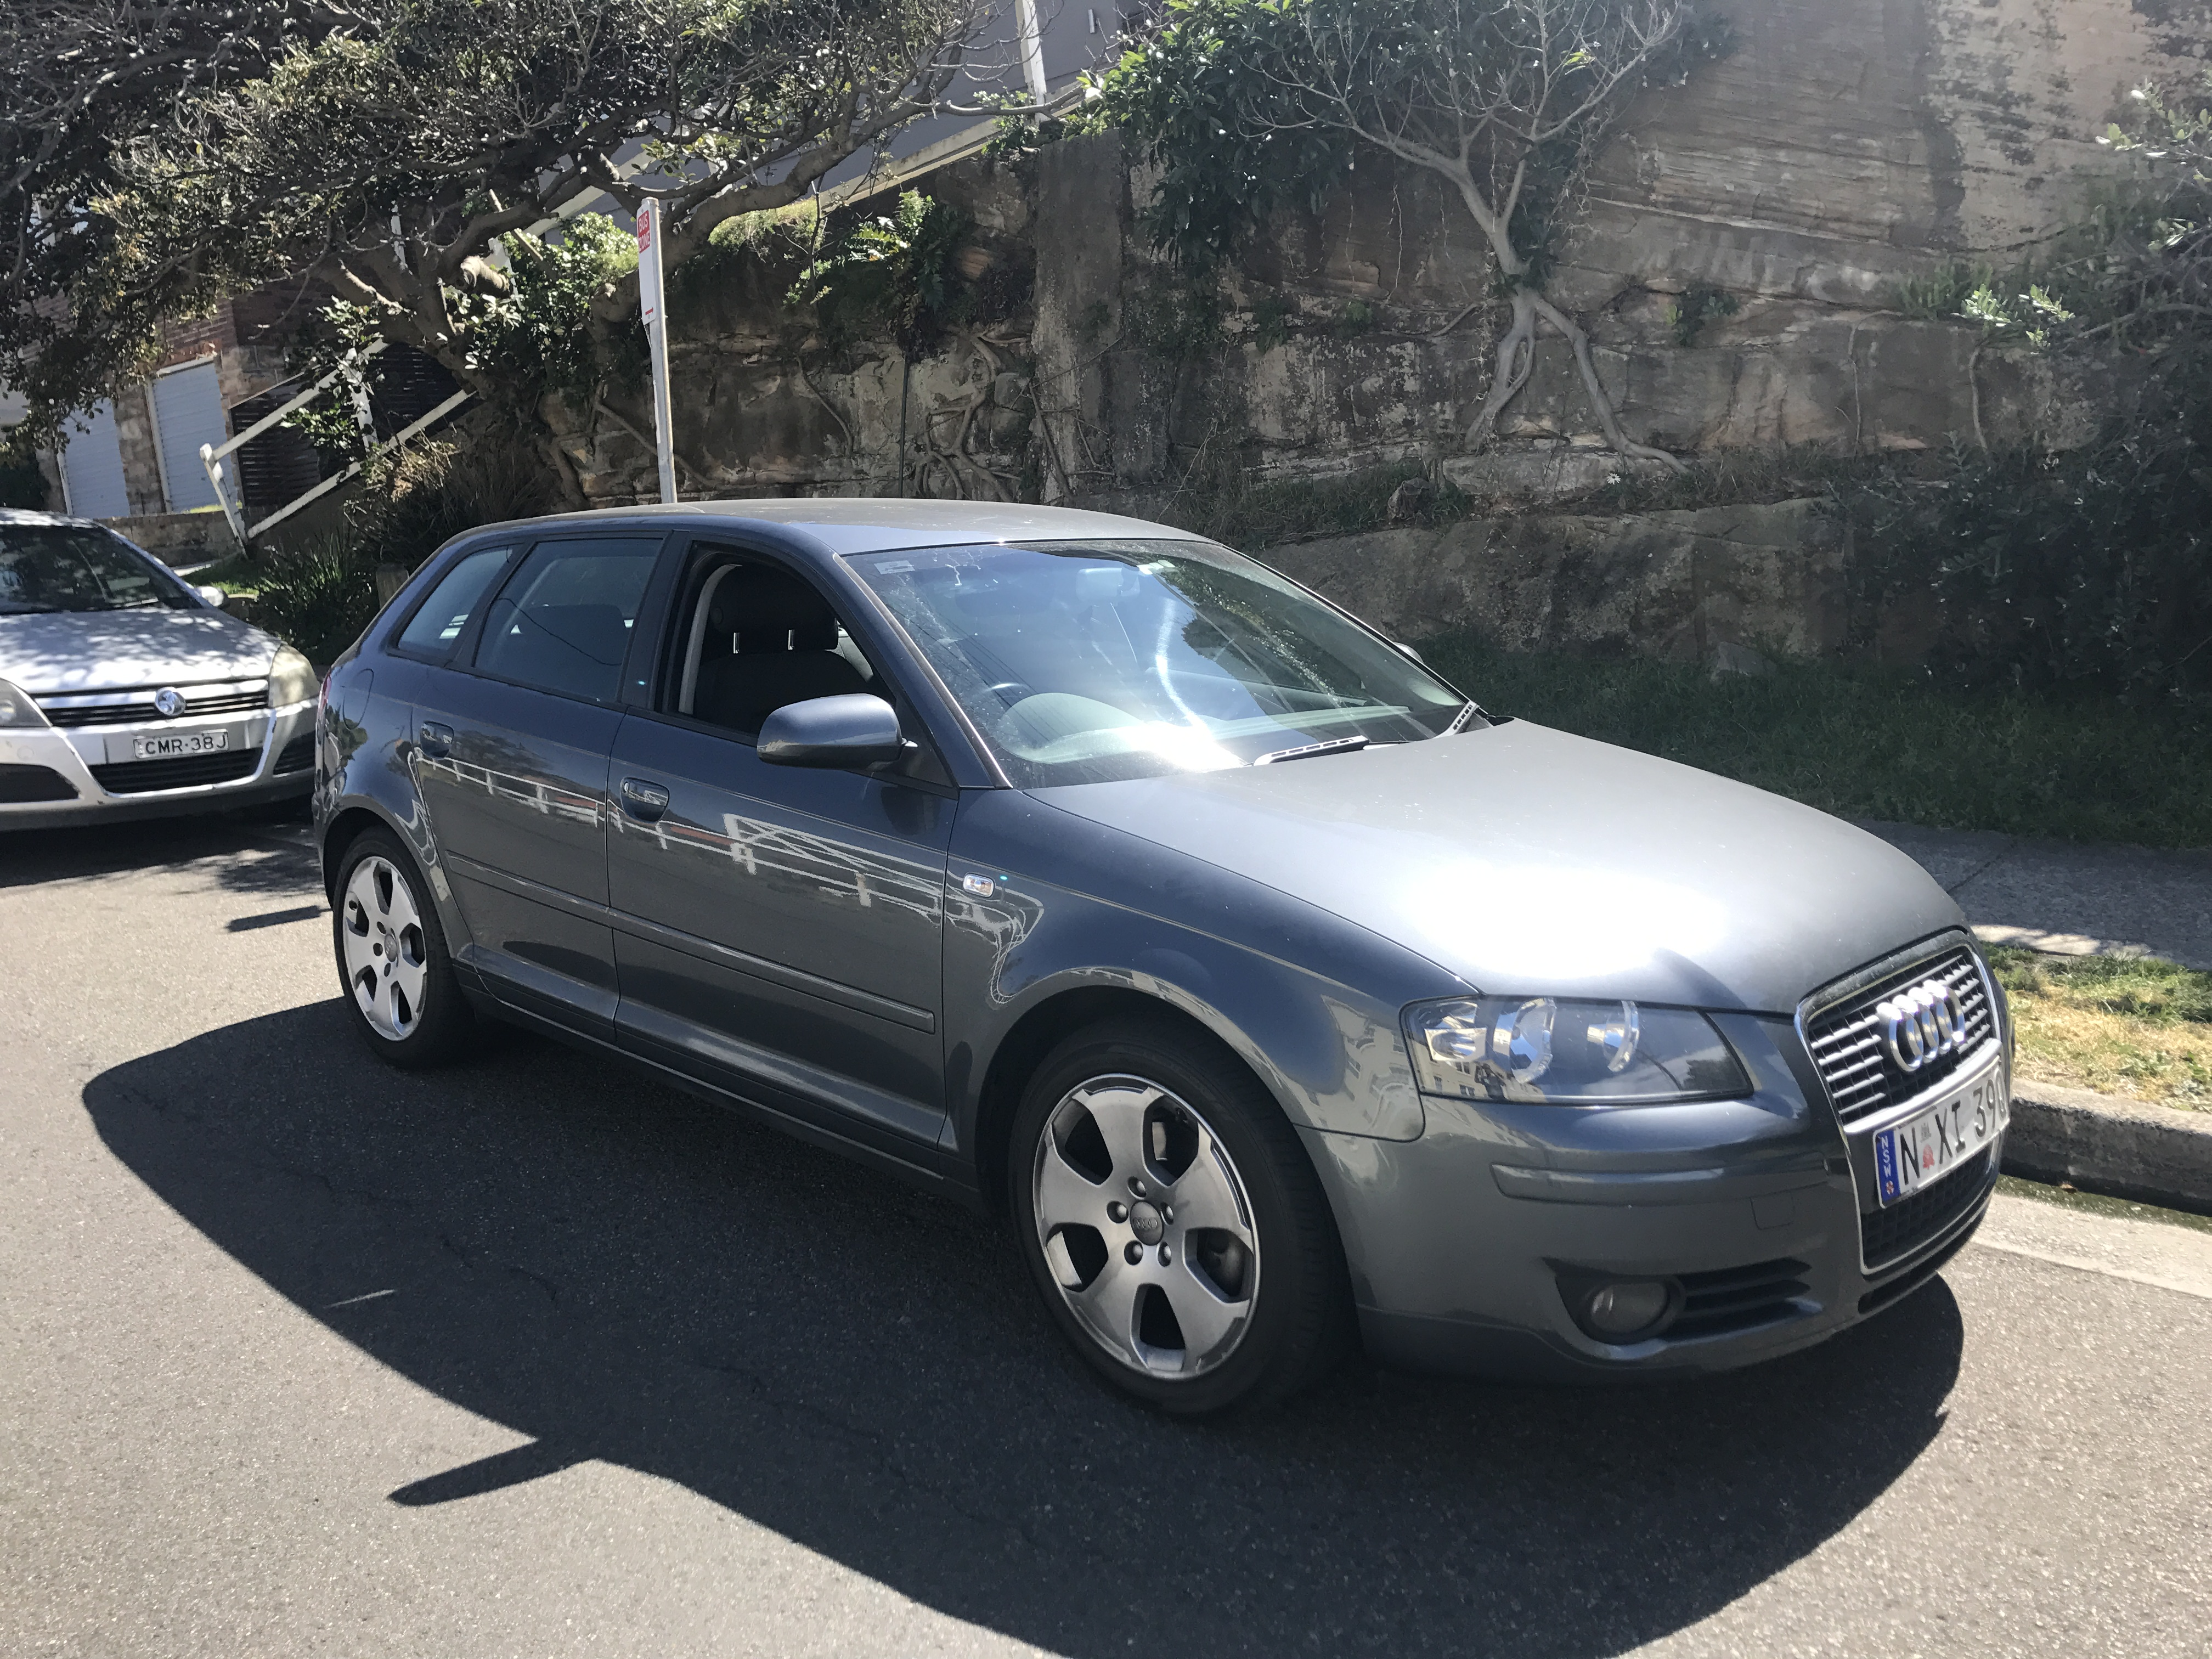 Picture of Timothee's 2005 Audi A3